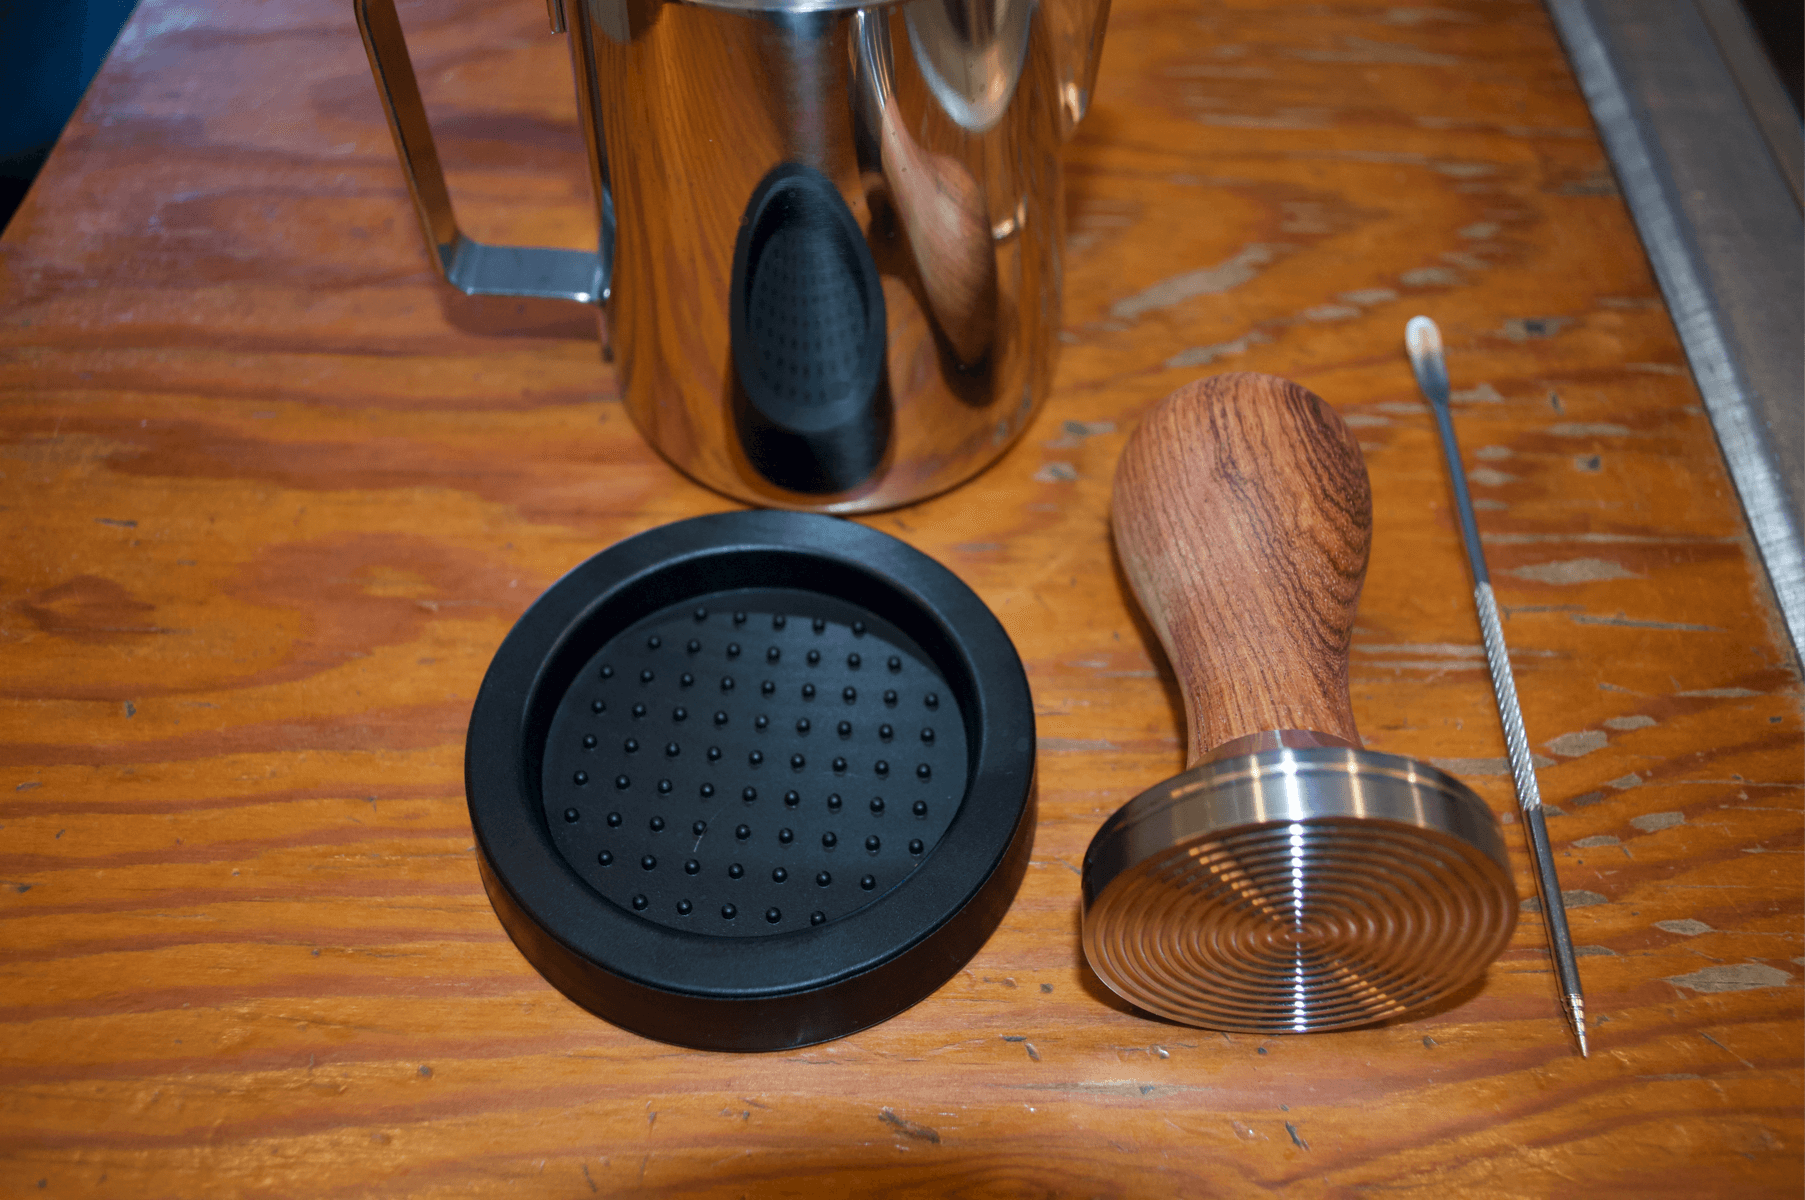 Best Espresso Tamper Set For Home Coffee Comes with Tamper mat to protect counter and rest portafilter